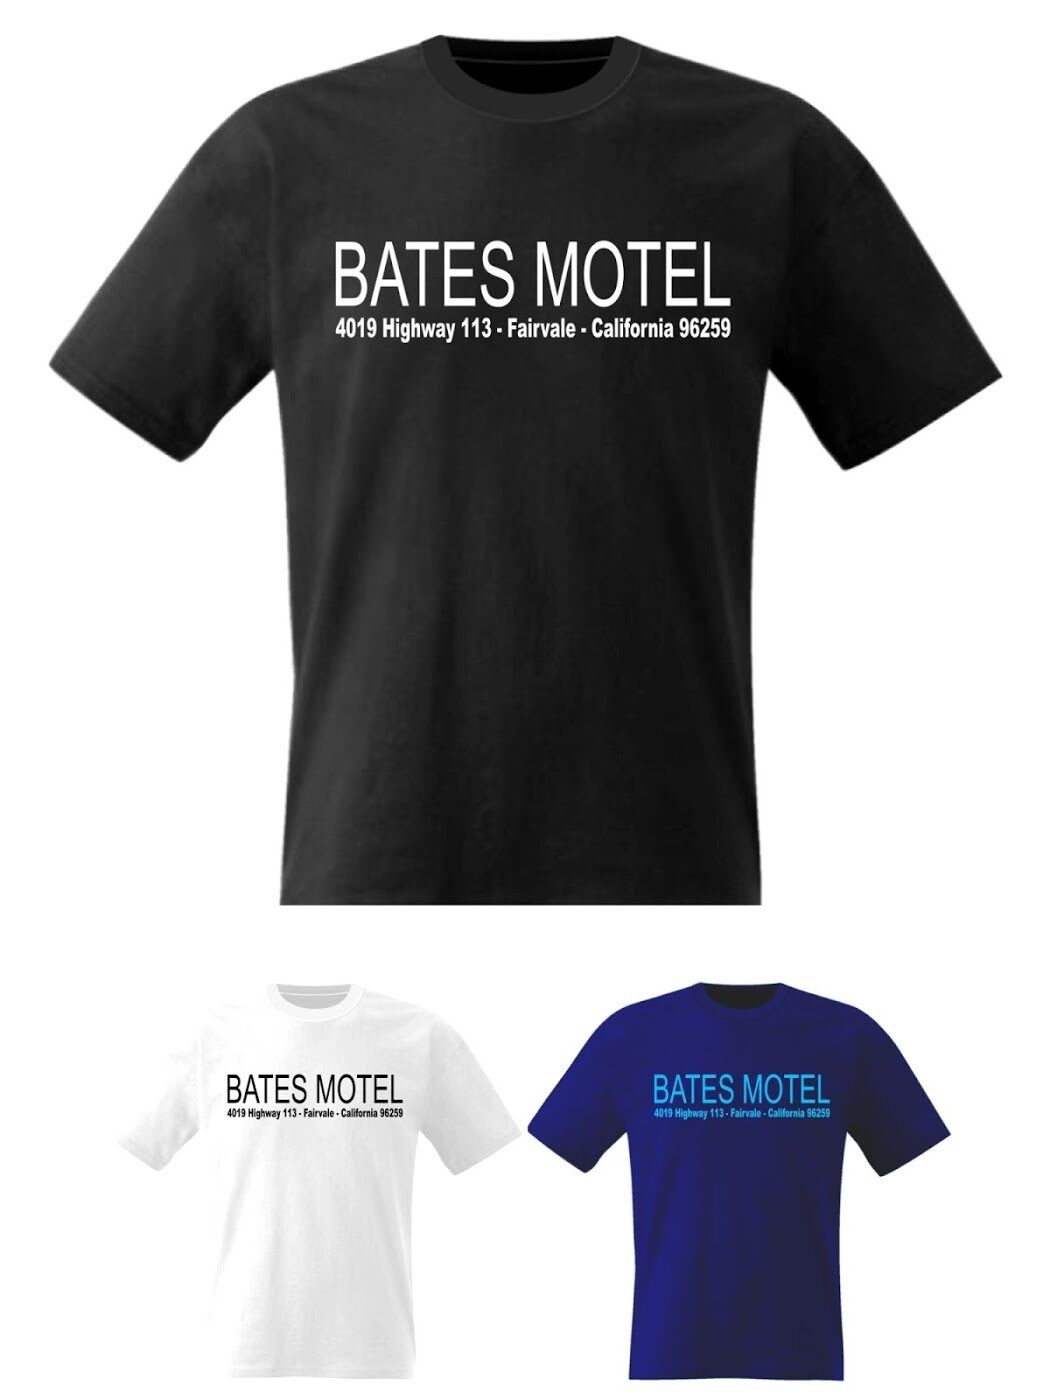 Bates Motel Psycho T Shirt Cult Hitchcock Movie DVD TV - Sizes Small to 8XL image